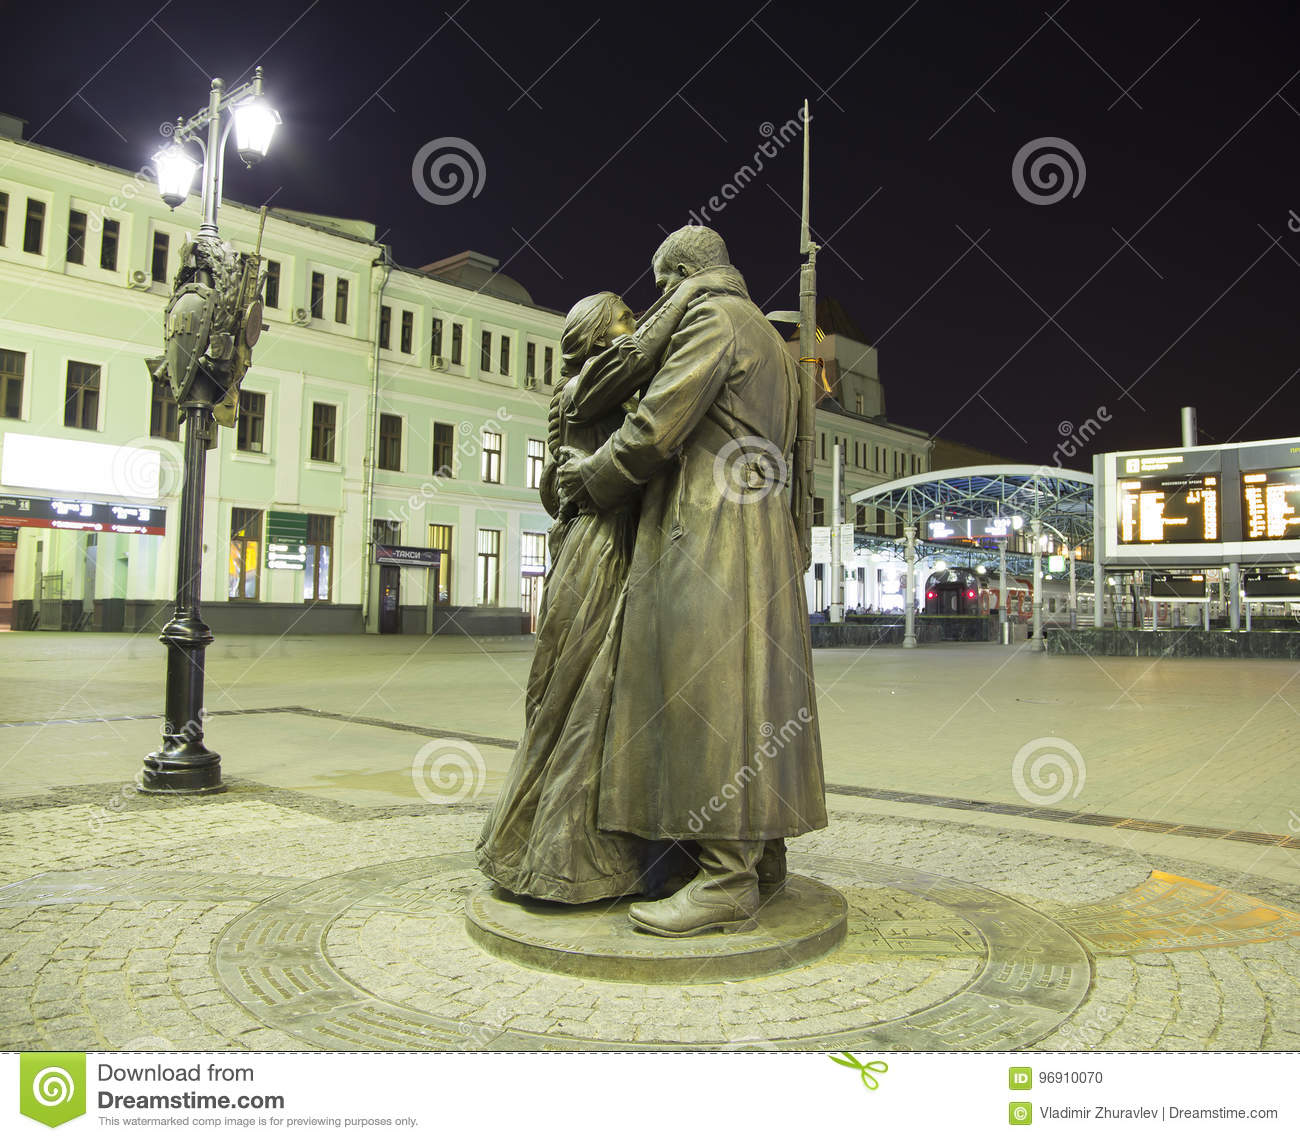 Moscow. Monument to the disassembled railway 6